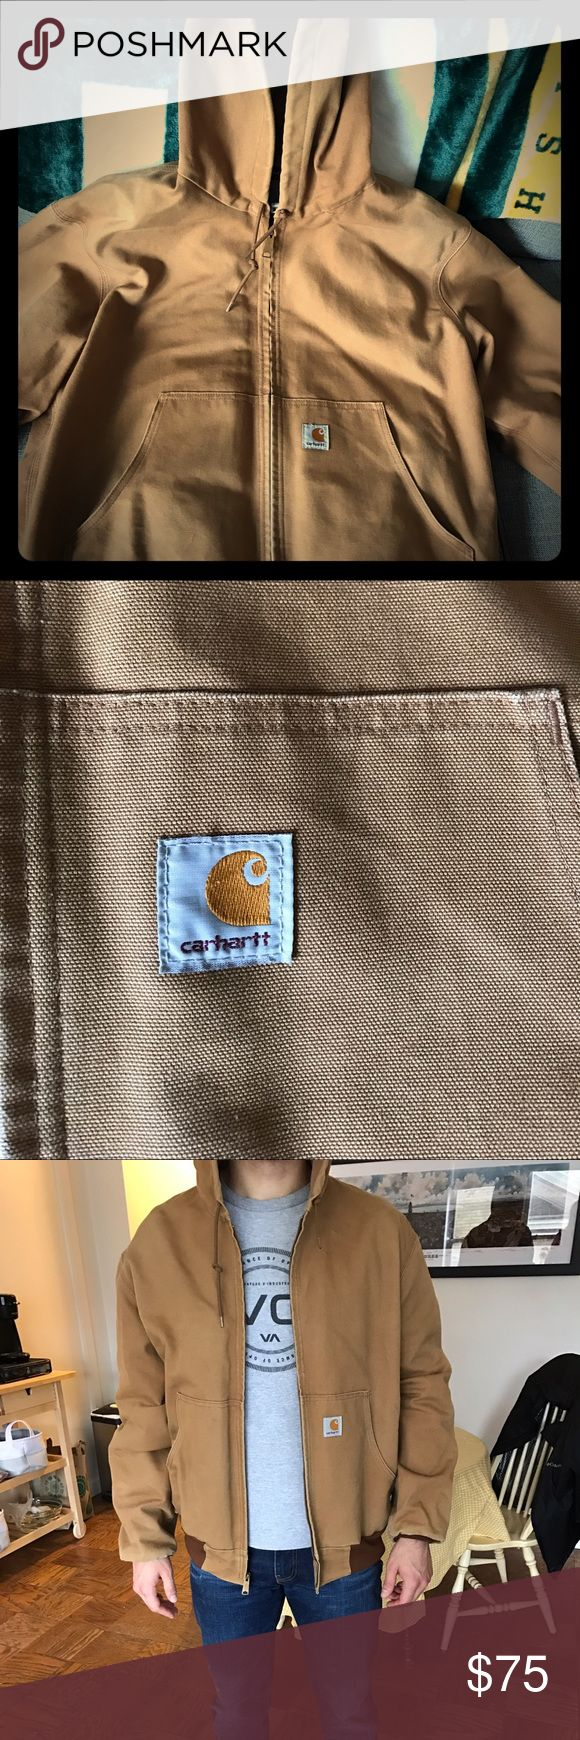 Carhartt Dark Khaki Winter Jacket Lightly worn Men's Carhartt winter jacket. Ultra warm, durable and perfect for those who work outdoors year round. Bought a few years ago but has been sitting in the closet and collecting dust. Small stain spot in lower right hand side of jacket mear zipper otherwise in great condition. Jackets & Coats